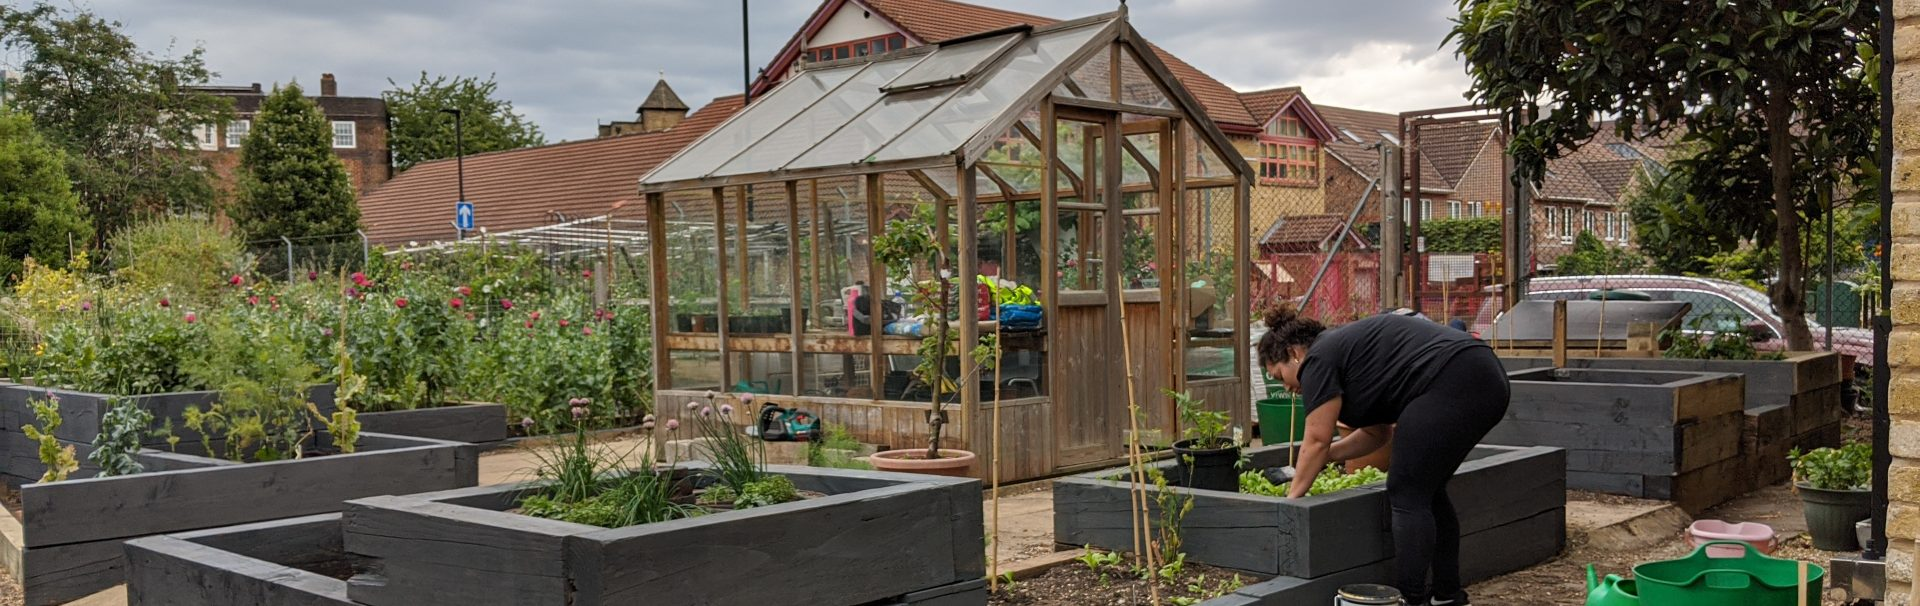 community garden with green house in center